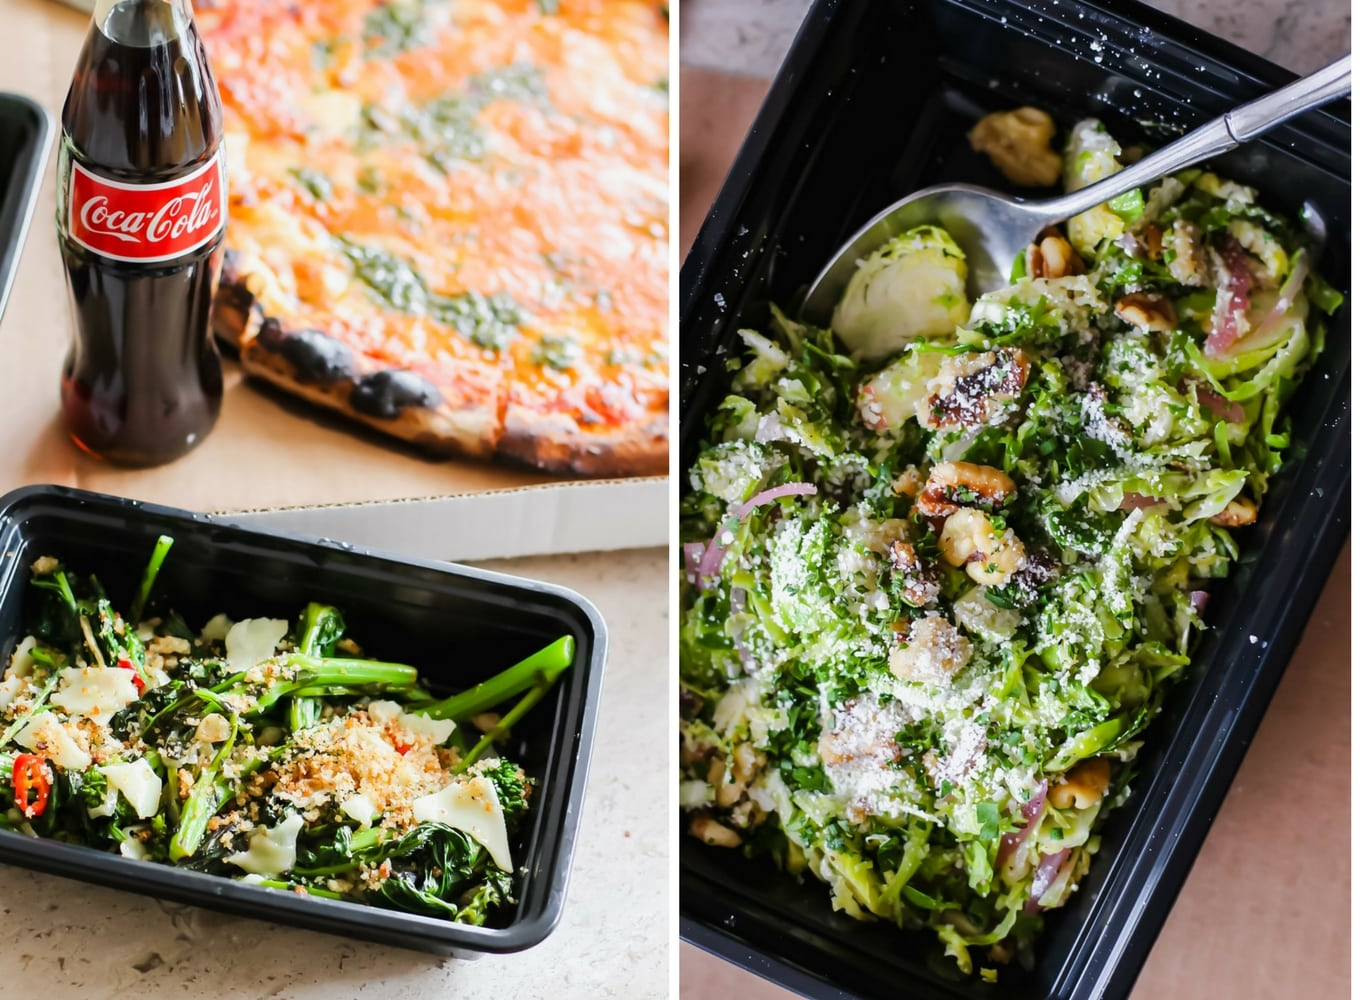 My Favorite Menu Items: Ode to Rubirosa Pizza (vodka sauce and nut free pesto!) and Brussel Sprout Salad